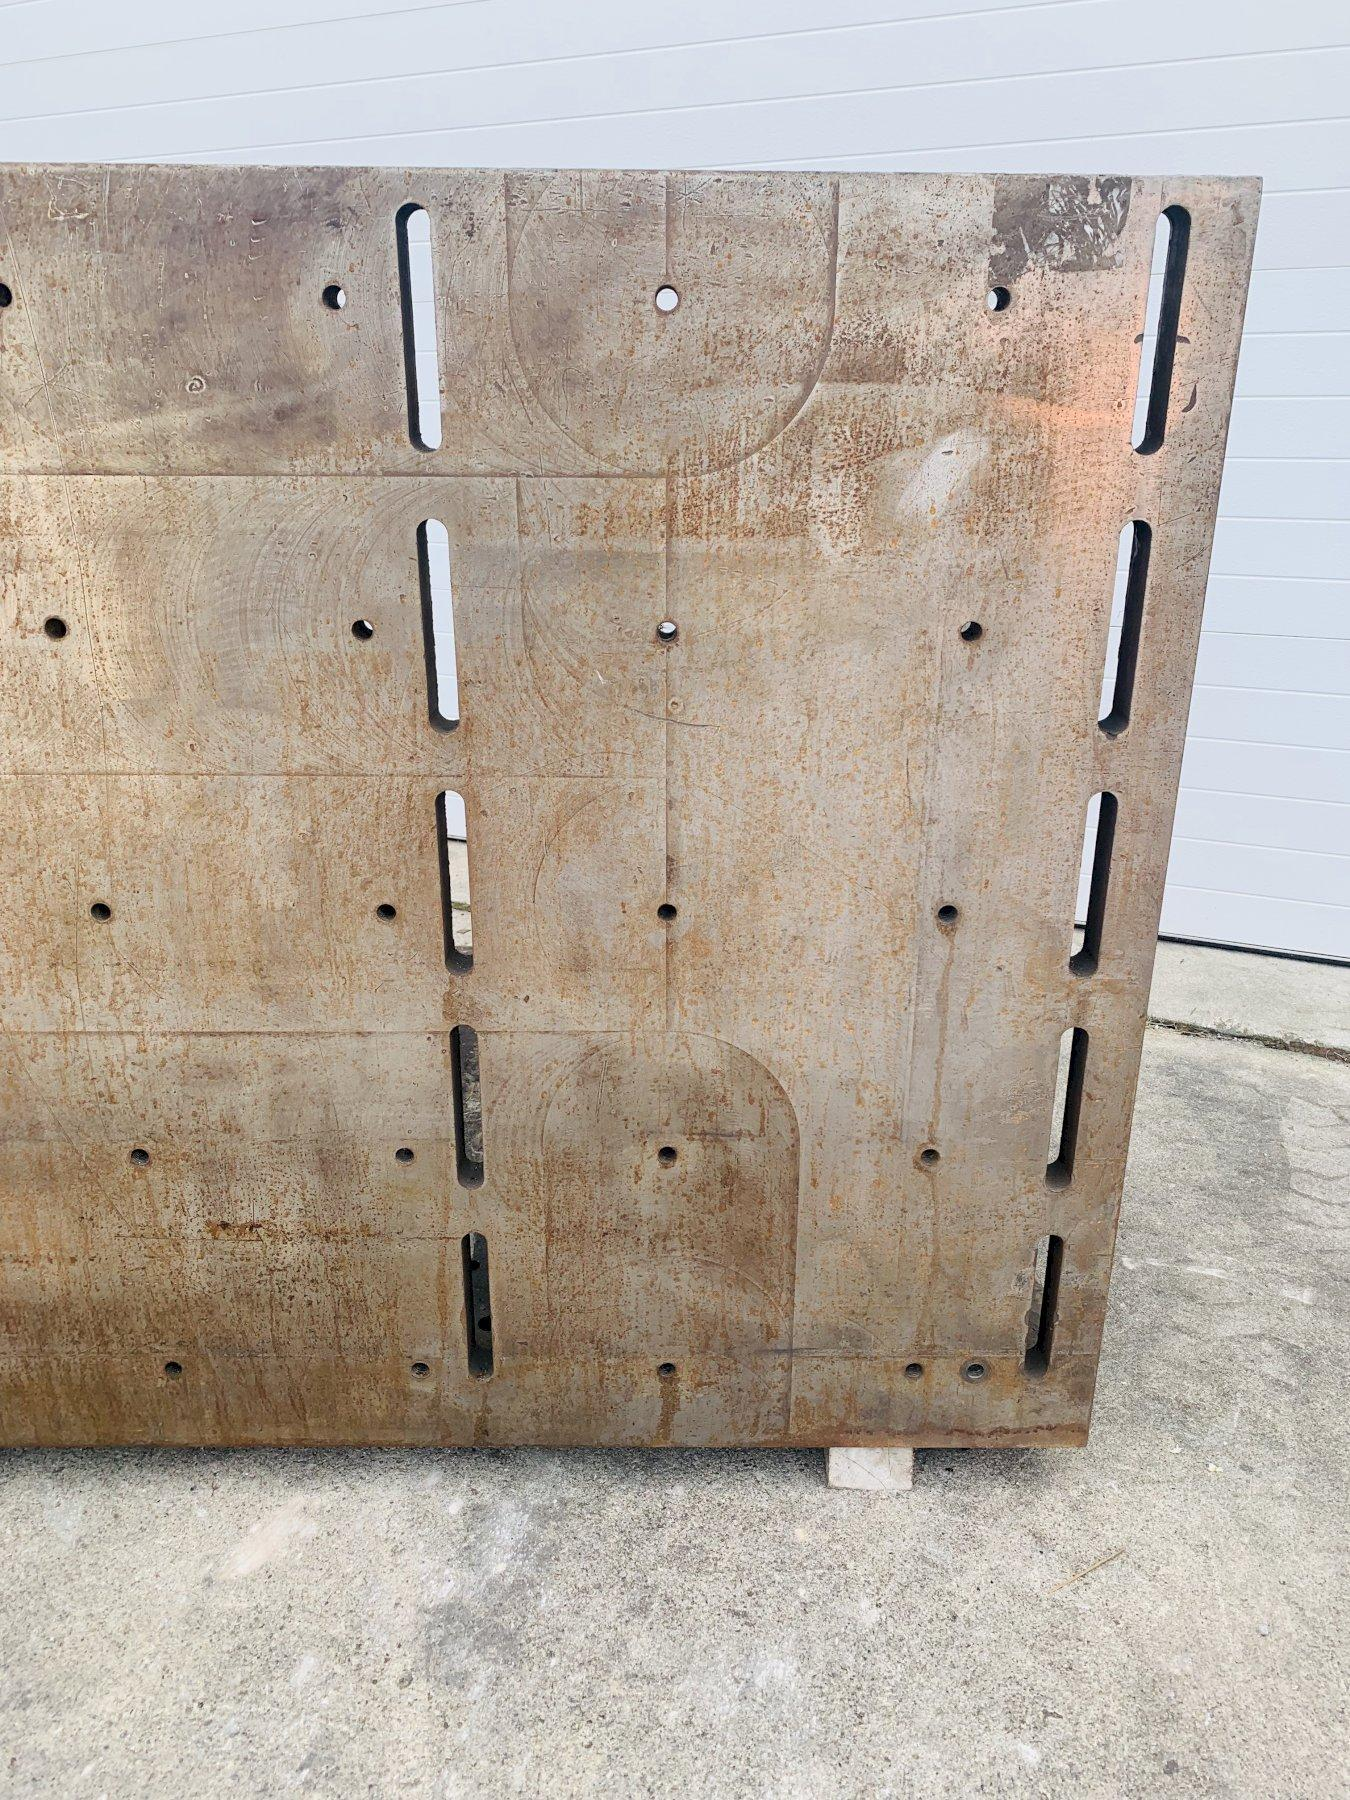 """95"""" X 48"""" X 48"""" 2 SIDED (SLOTTED & DRILLED/TAPPED) HEAVY DUTY ANGLE PLATE: STOCK #11097"""